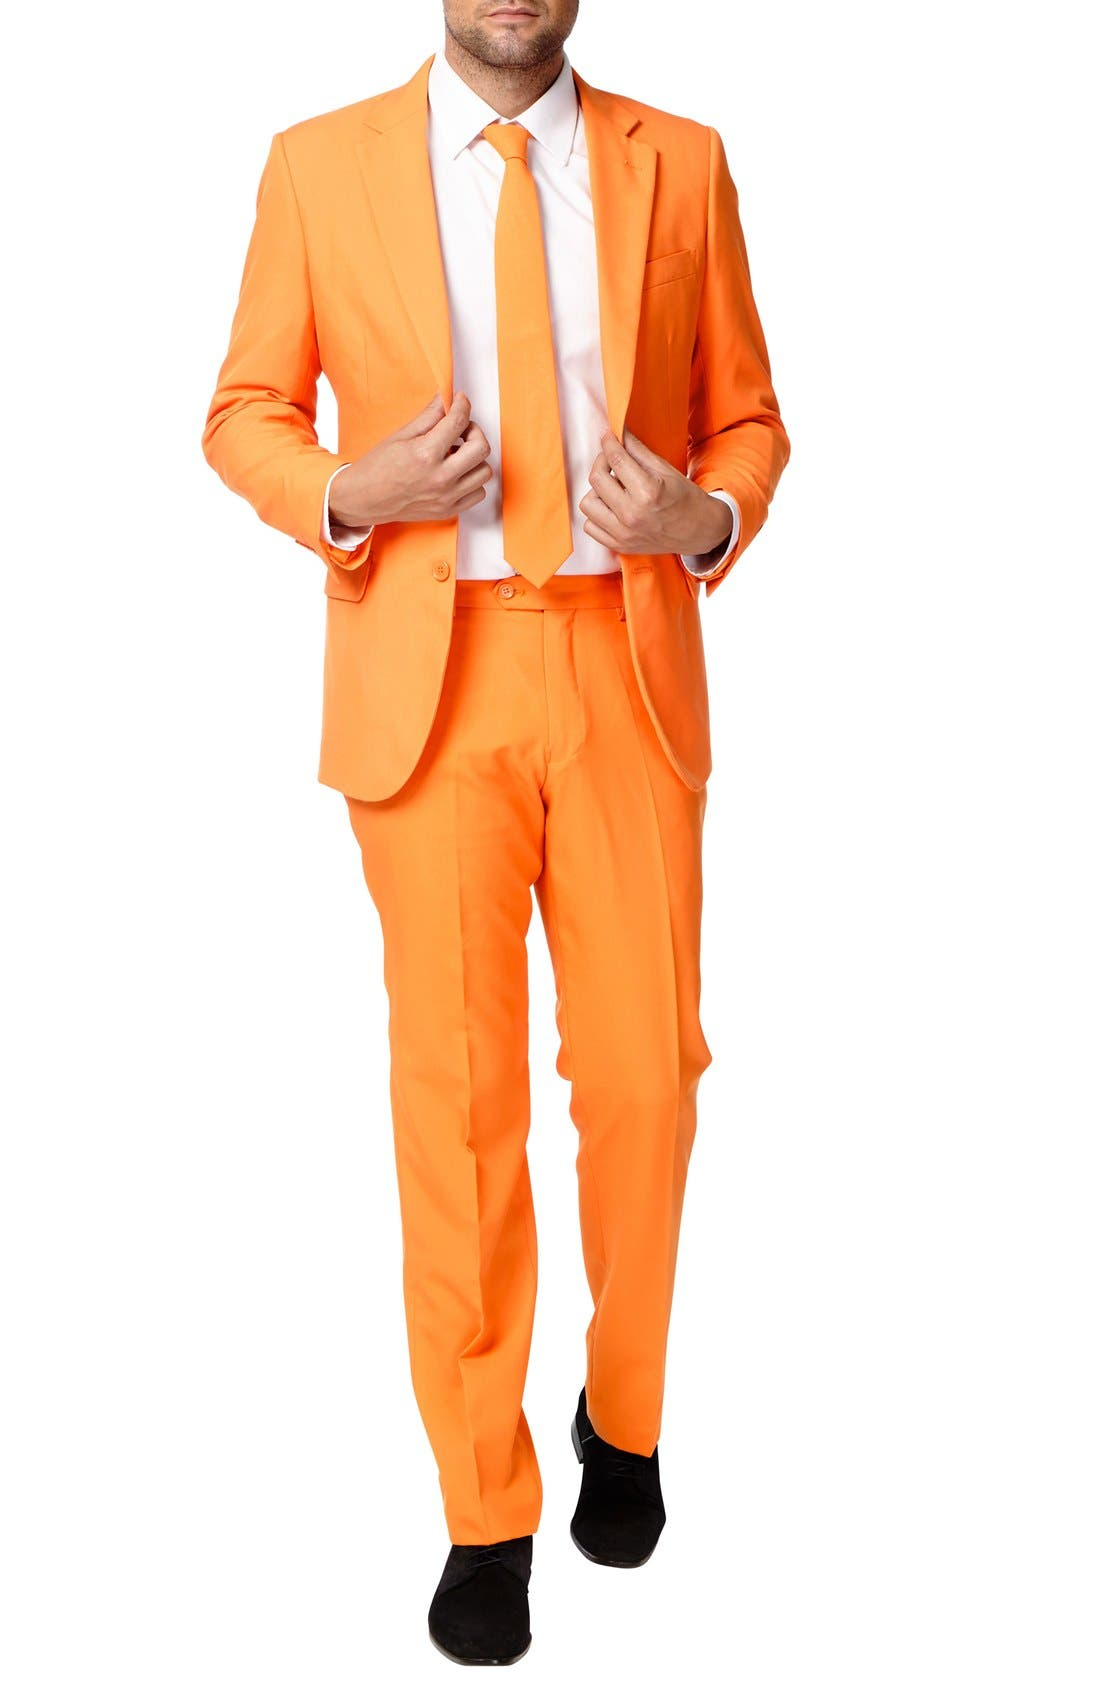 OppoSuits 'The Orange' Trim Fit Two-Piece Suit with Tie